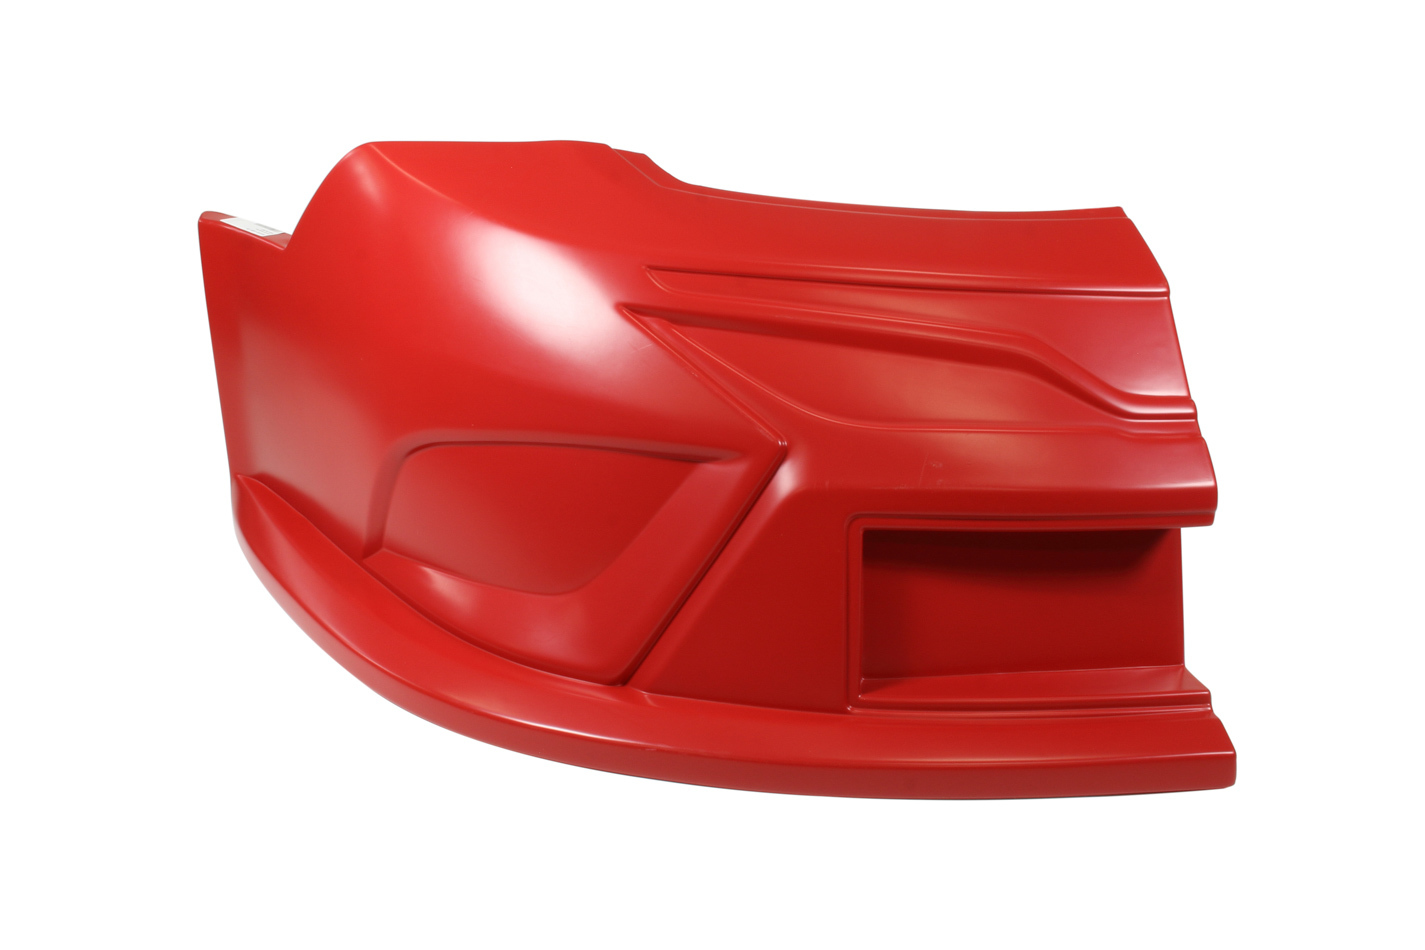 FIVESTAR 2019 LM Toyota Nose Plastic Red Right P/N -11712-41051-RR